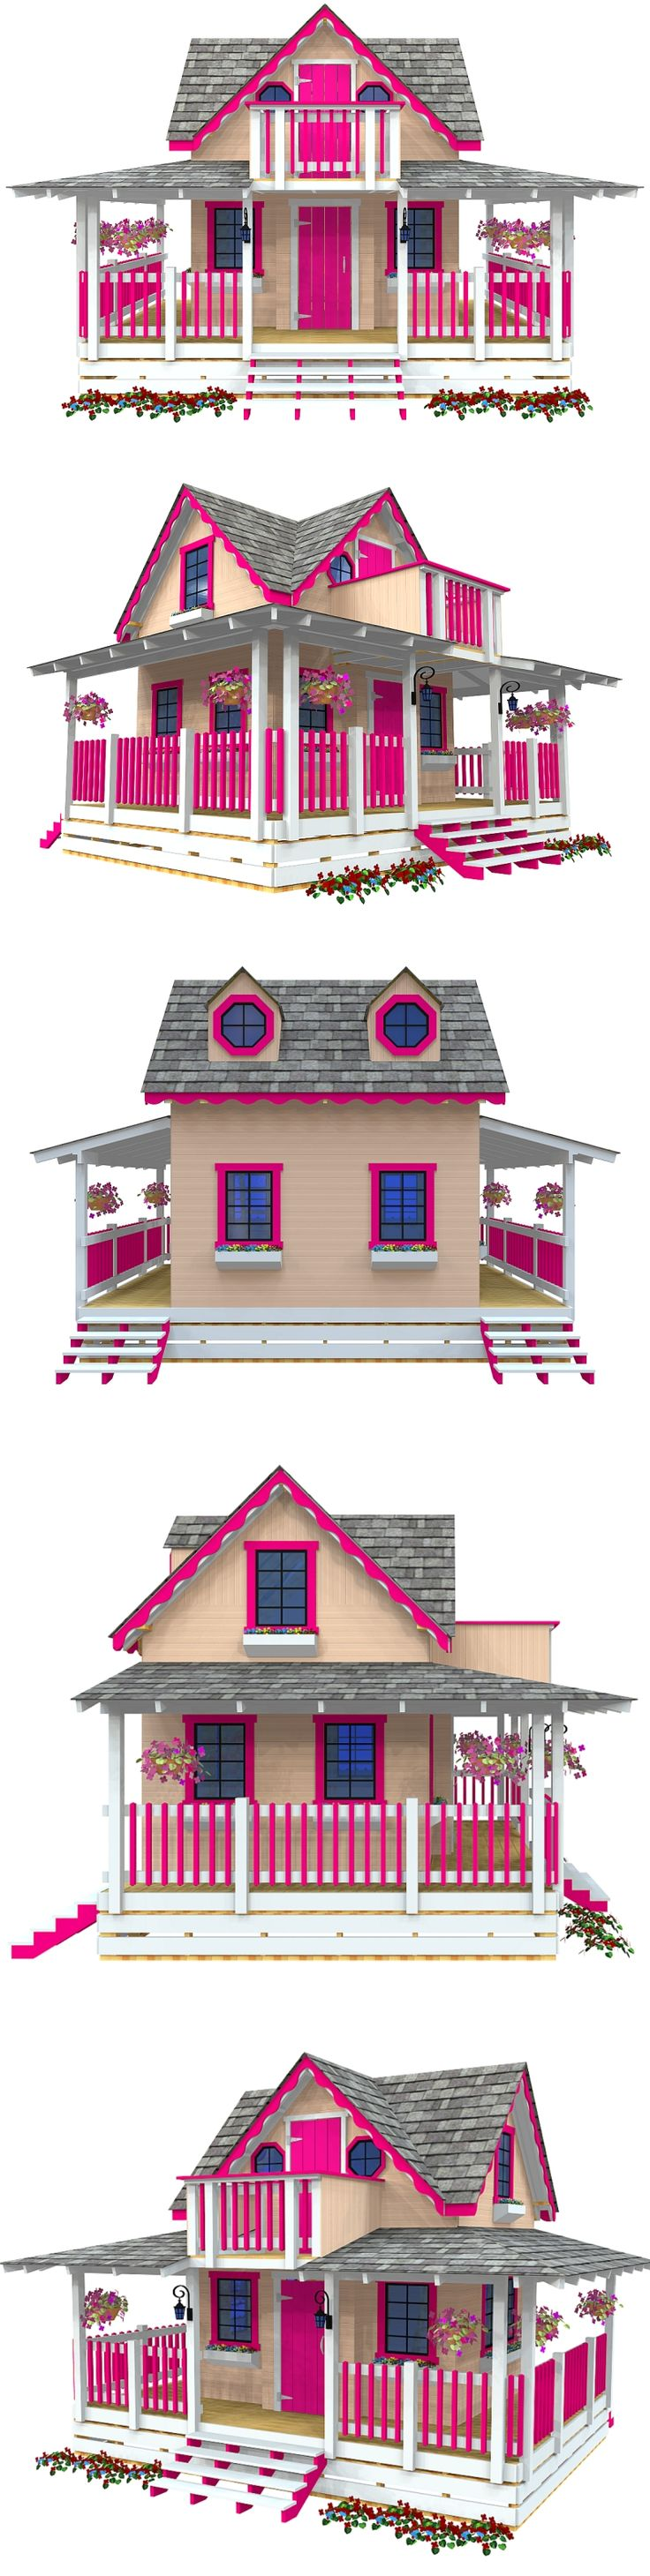 The Wishful Wendy playhouse plan.  Includes a full wrap around porch, 2nd floor, balcony and 14 windows.  With the basic carpentry tools and a few weekends, you can build this!